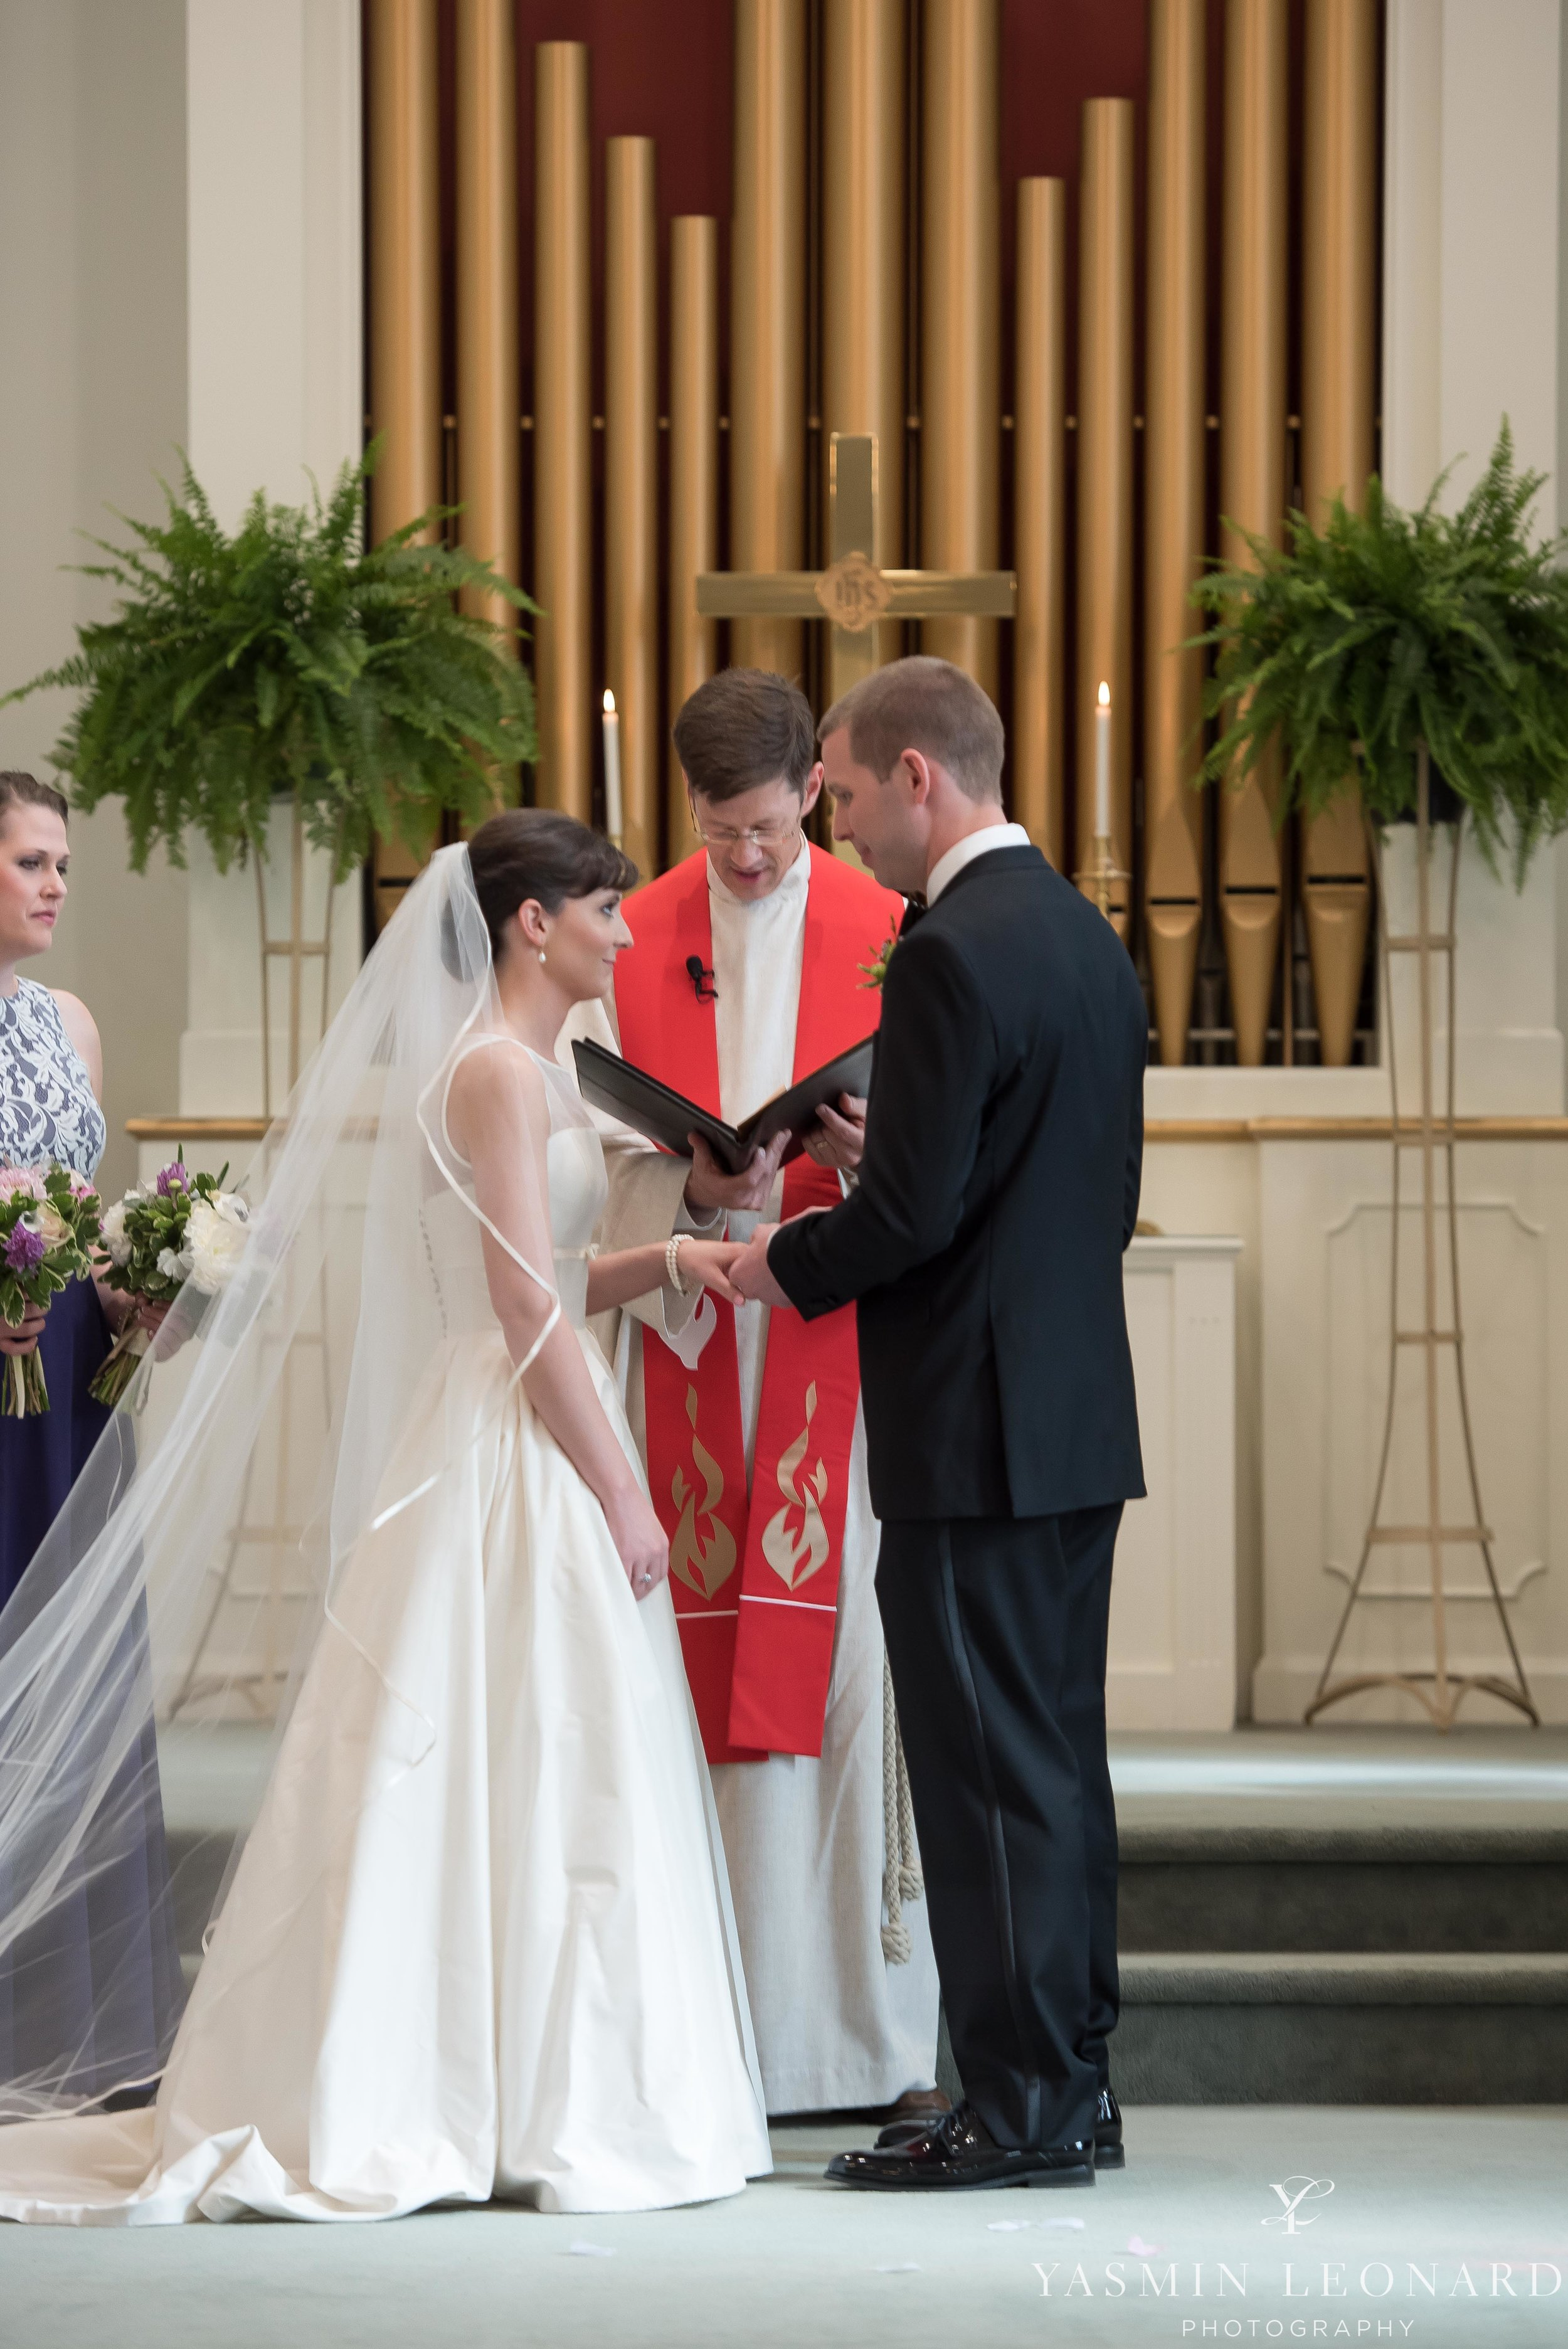 JH ADAMS INN - HIGH POINT UNIVERSITY CHAPEL WEDDING - HPU CHAPEL - HIGH POINT WEDDINGS - NC WEDDING PHOTOGRAPHER - YASMIN LEONARD PHOTOGRAPHY - HIGH POINT NC - HIGH POINT WEDDINGS -31.jpg